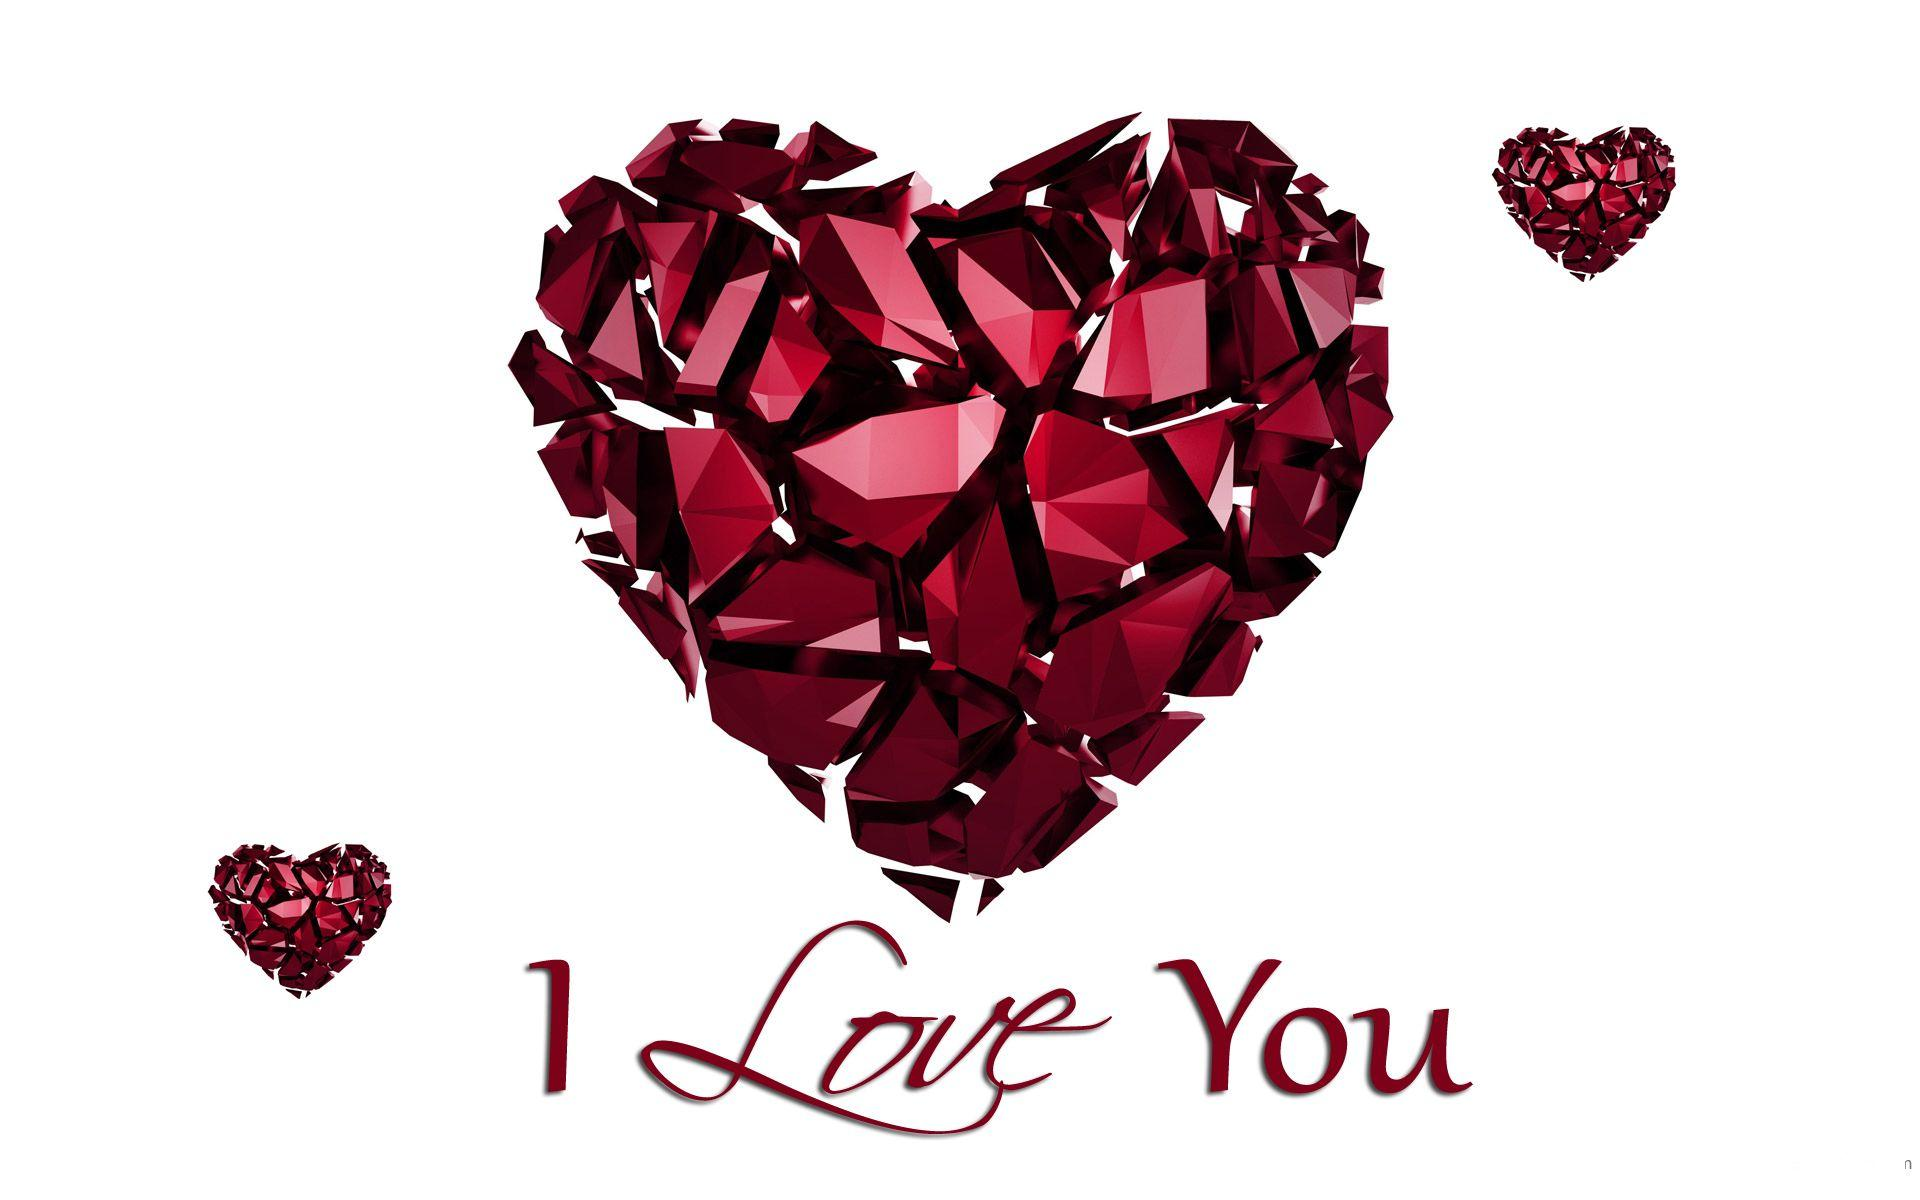 Love You Wallpaper 3d : I Love You Image Wallpapers - Wallpaper cave